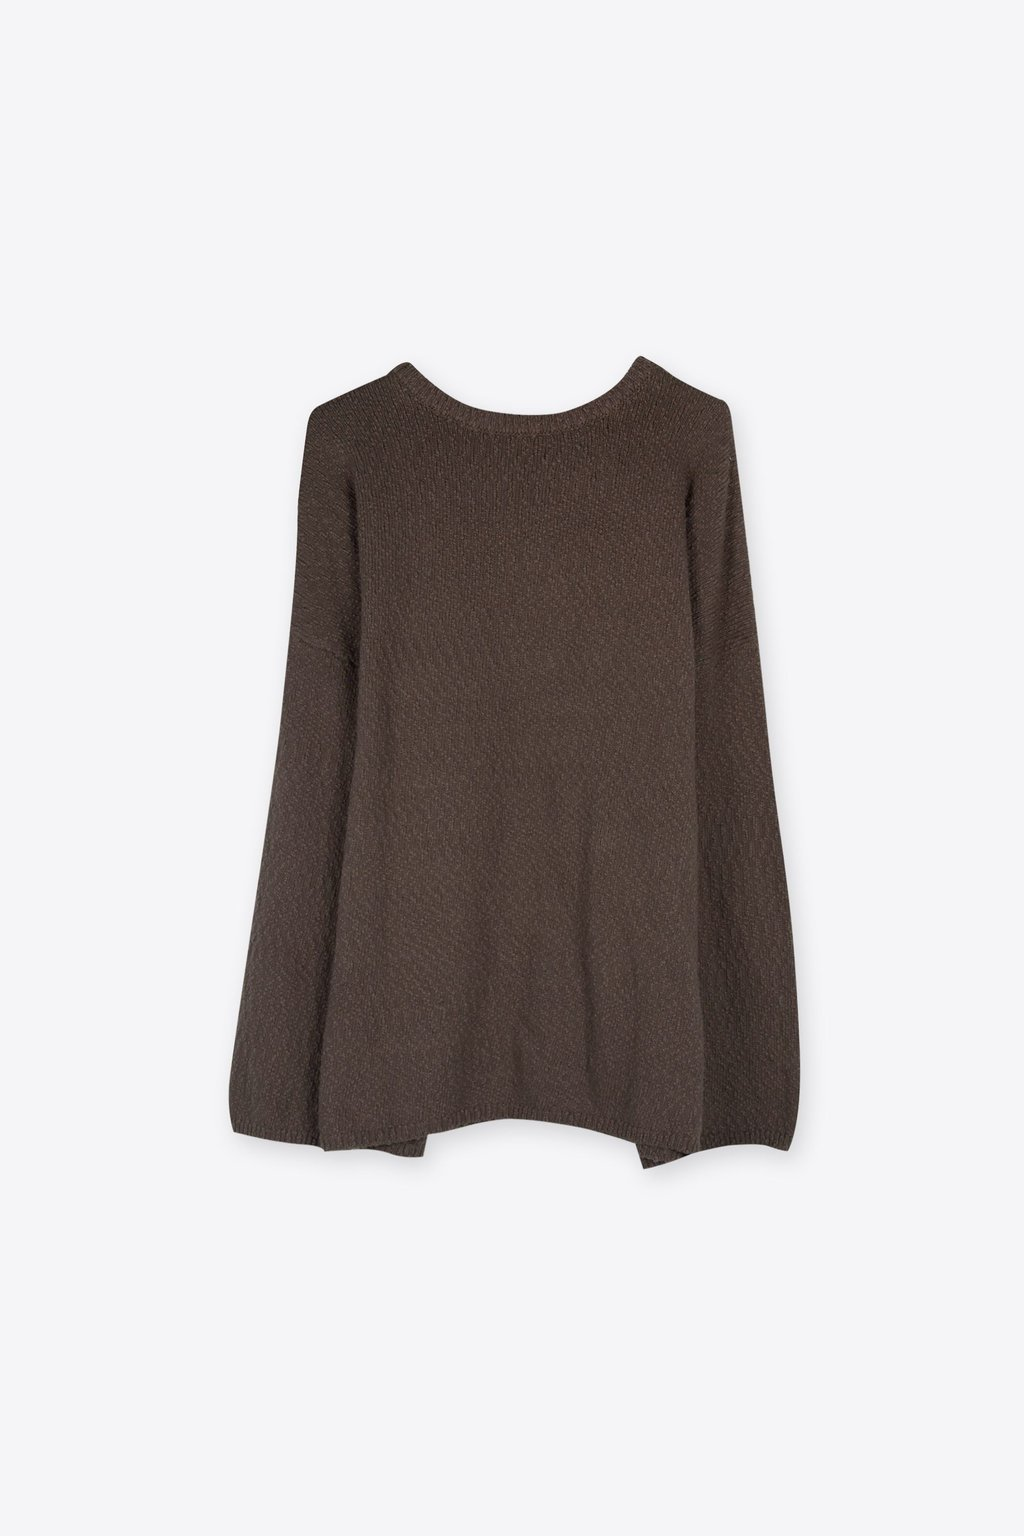 Sweater 1094 Olive 4